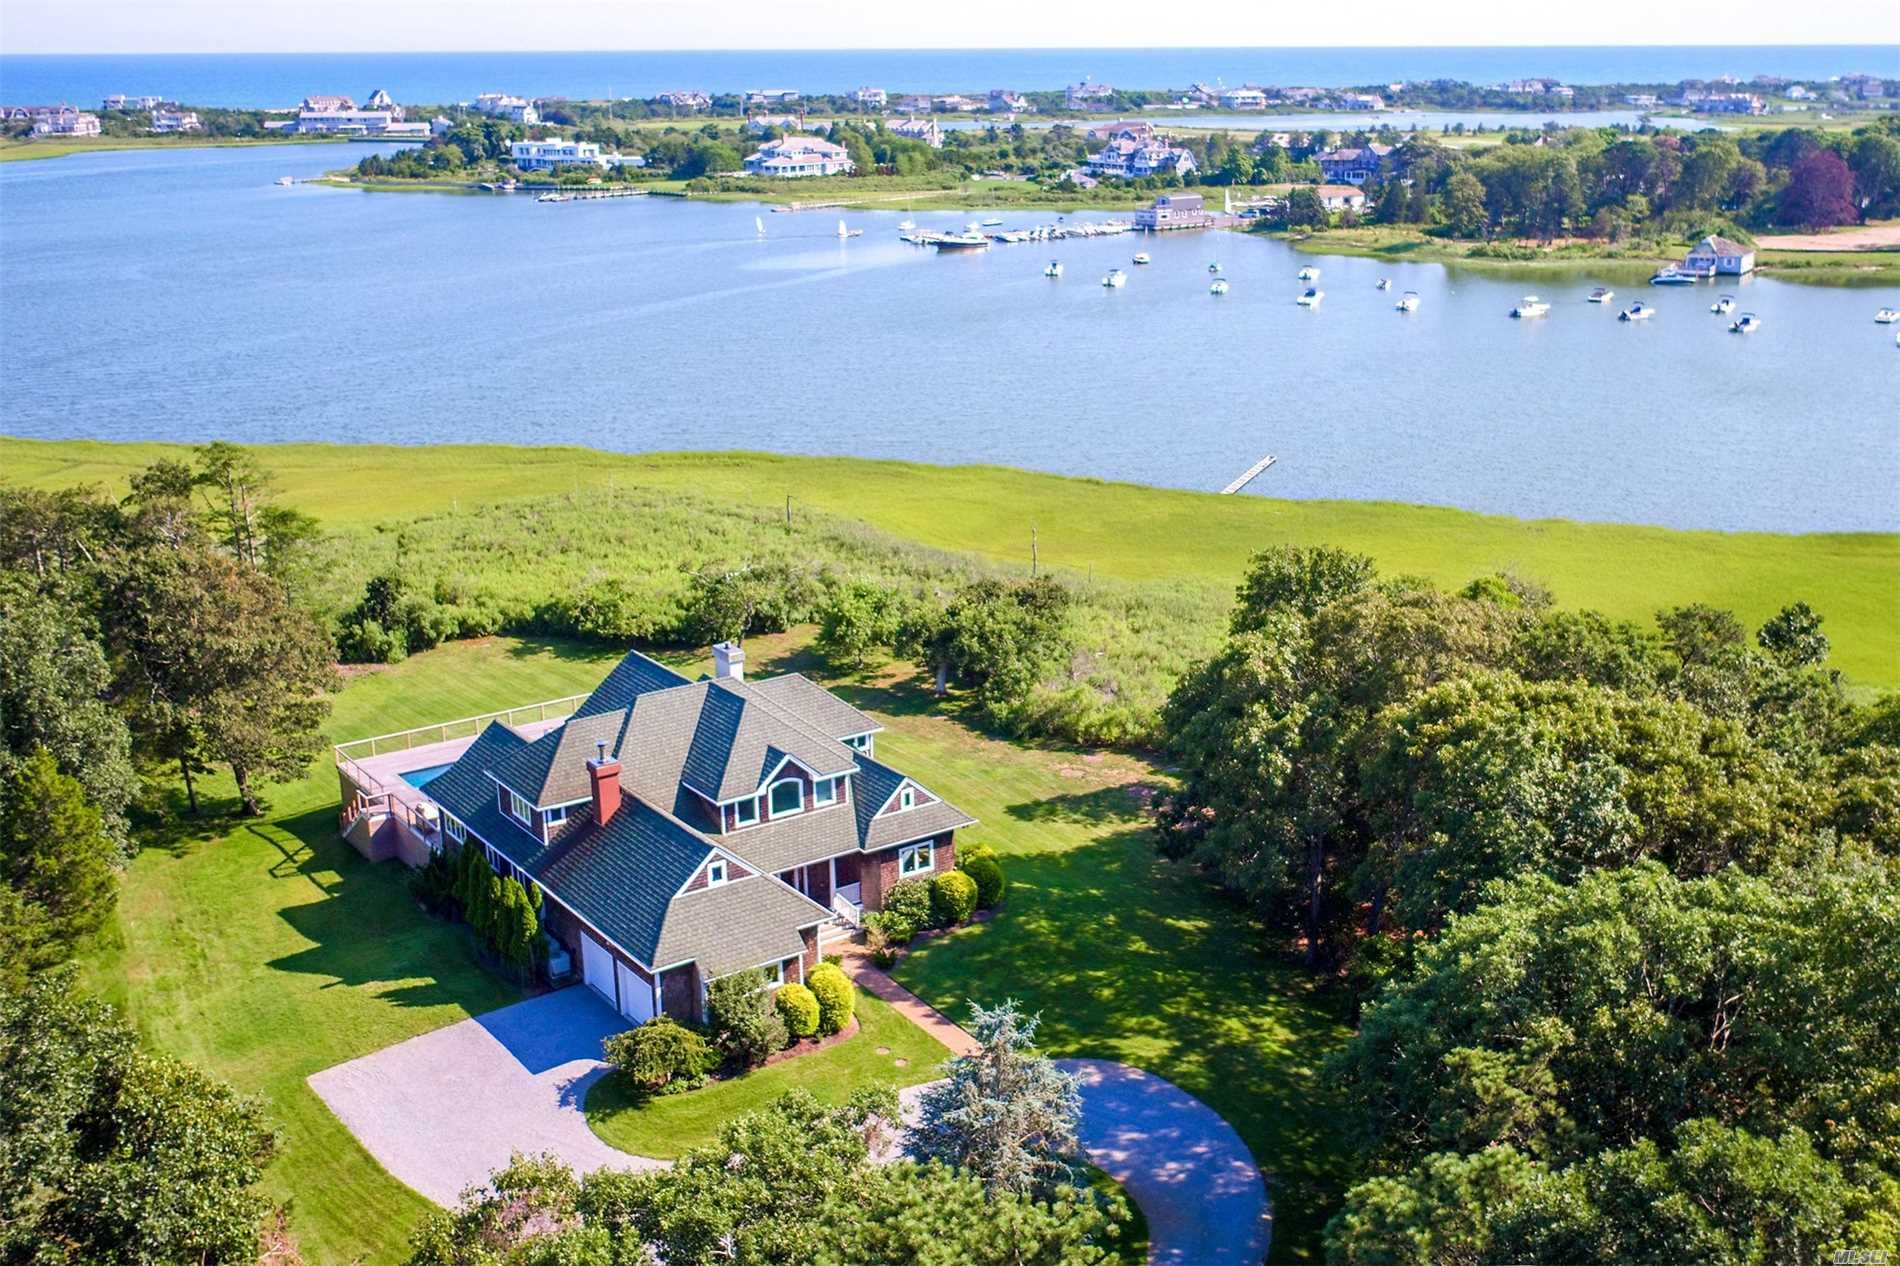 Best Deal In Quogue, Magnificent Views, Beautiful Grounds, Very Private, Fresh And Bright, Deep Water Boat Dock,